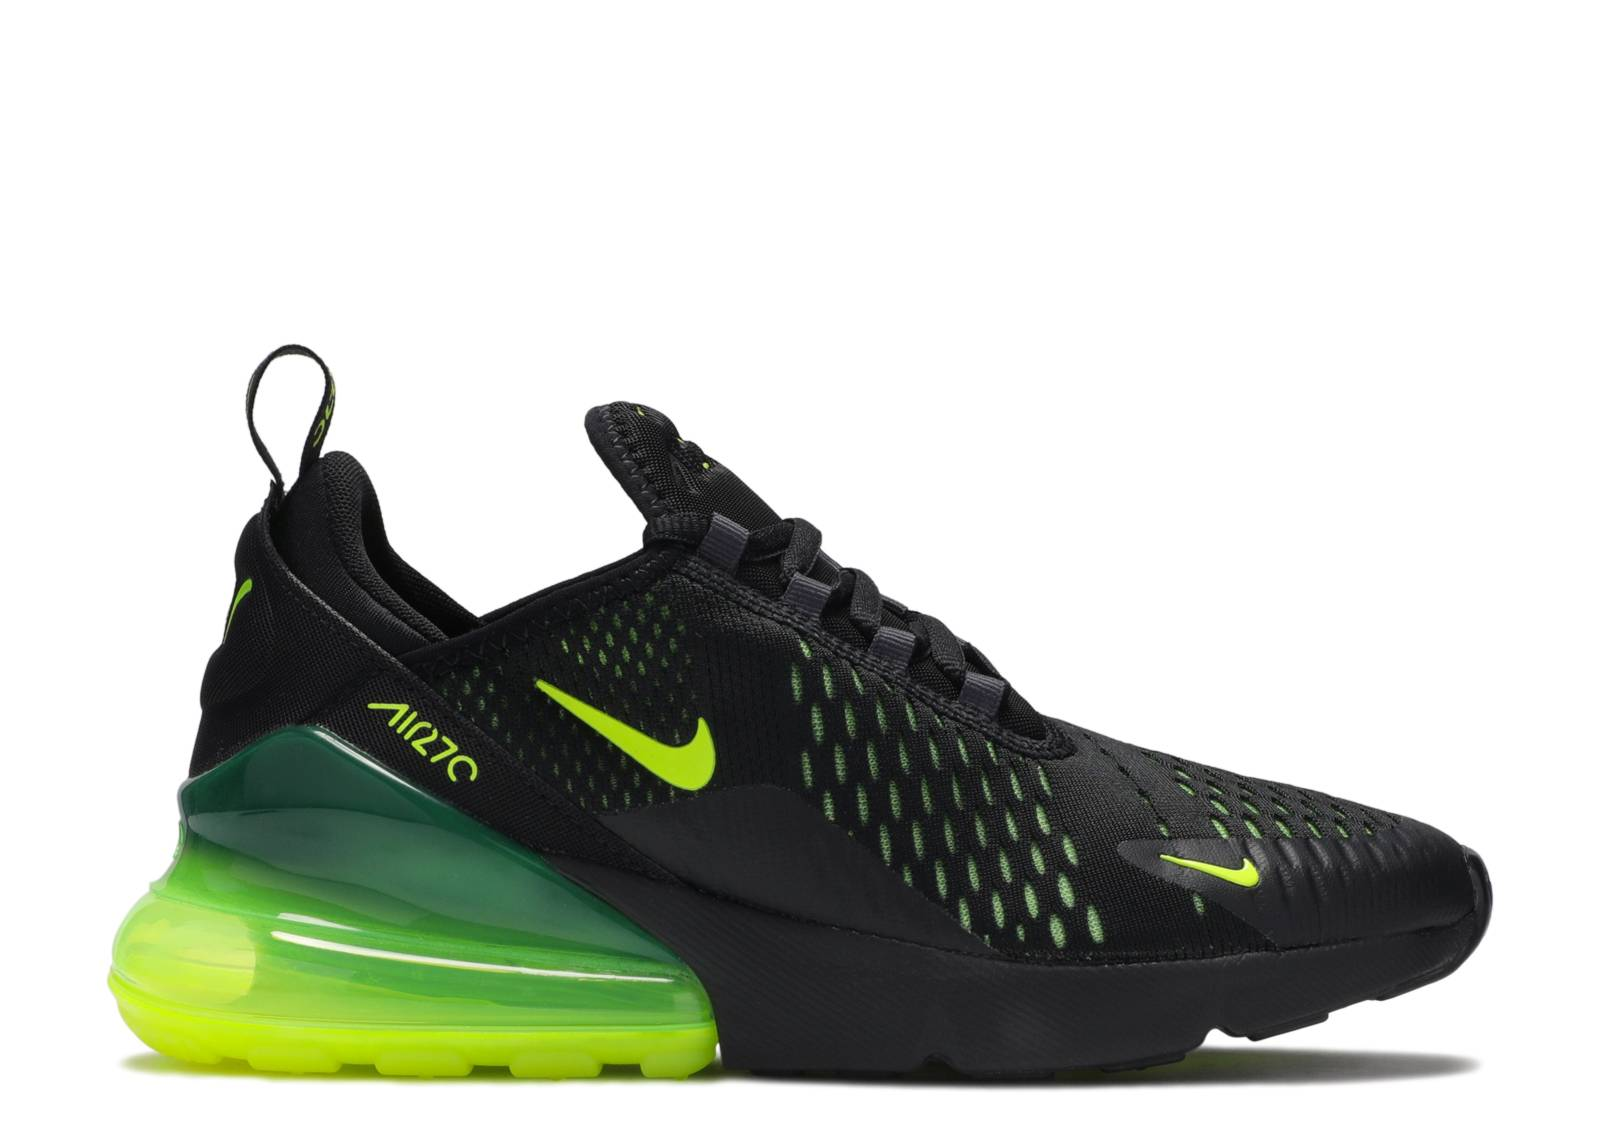 Nike Air Max 270 Running Shoes Black Neon Green Volt Men's